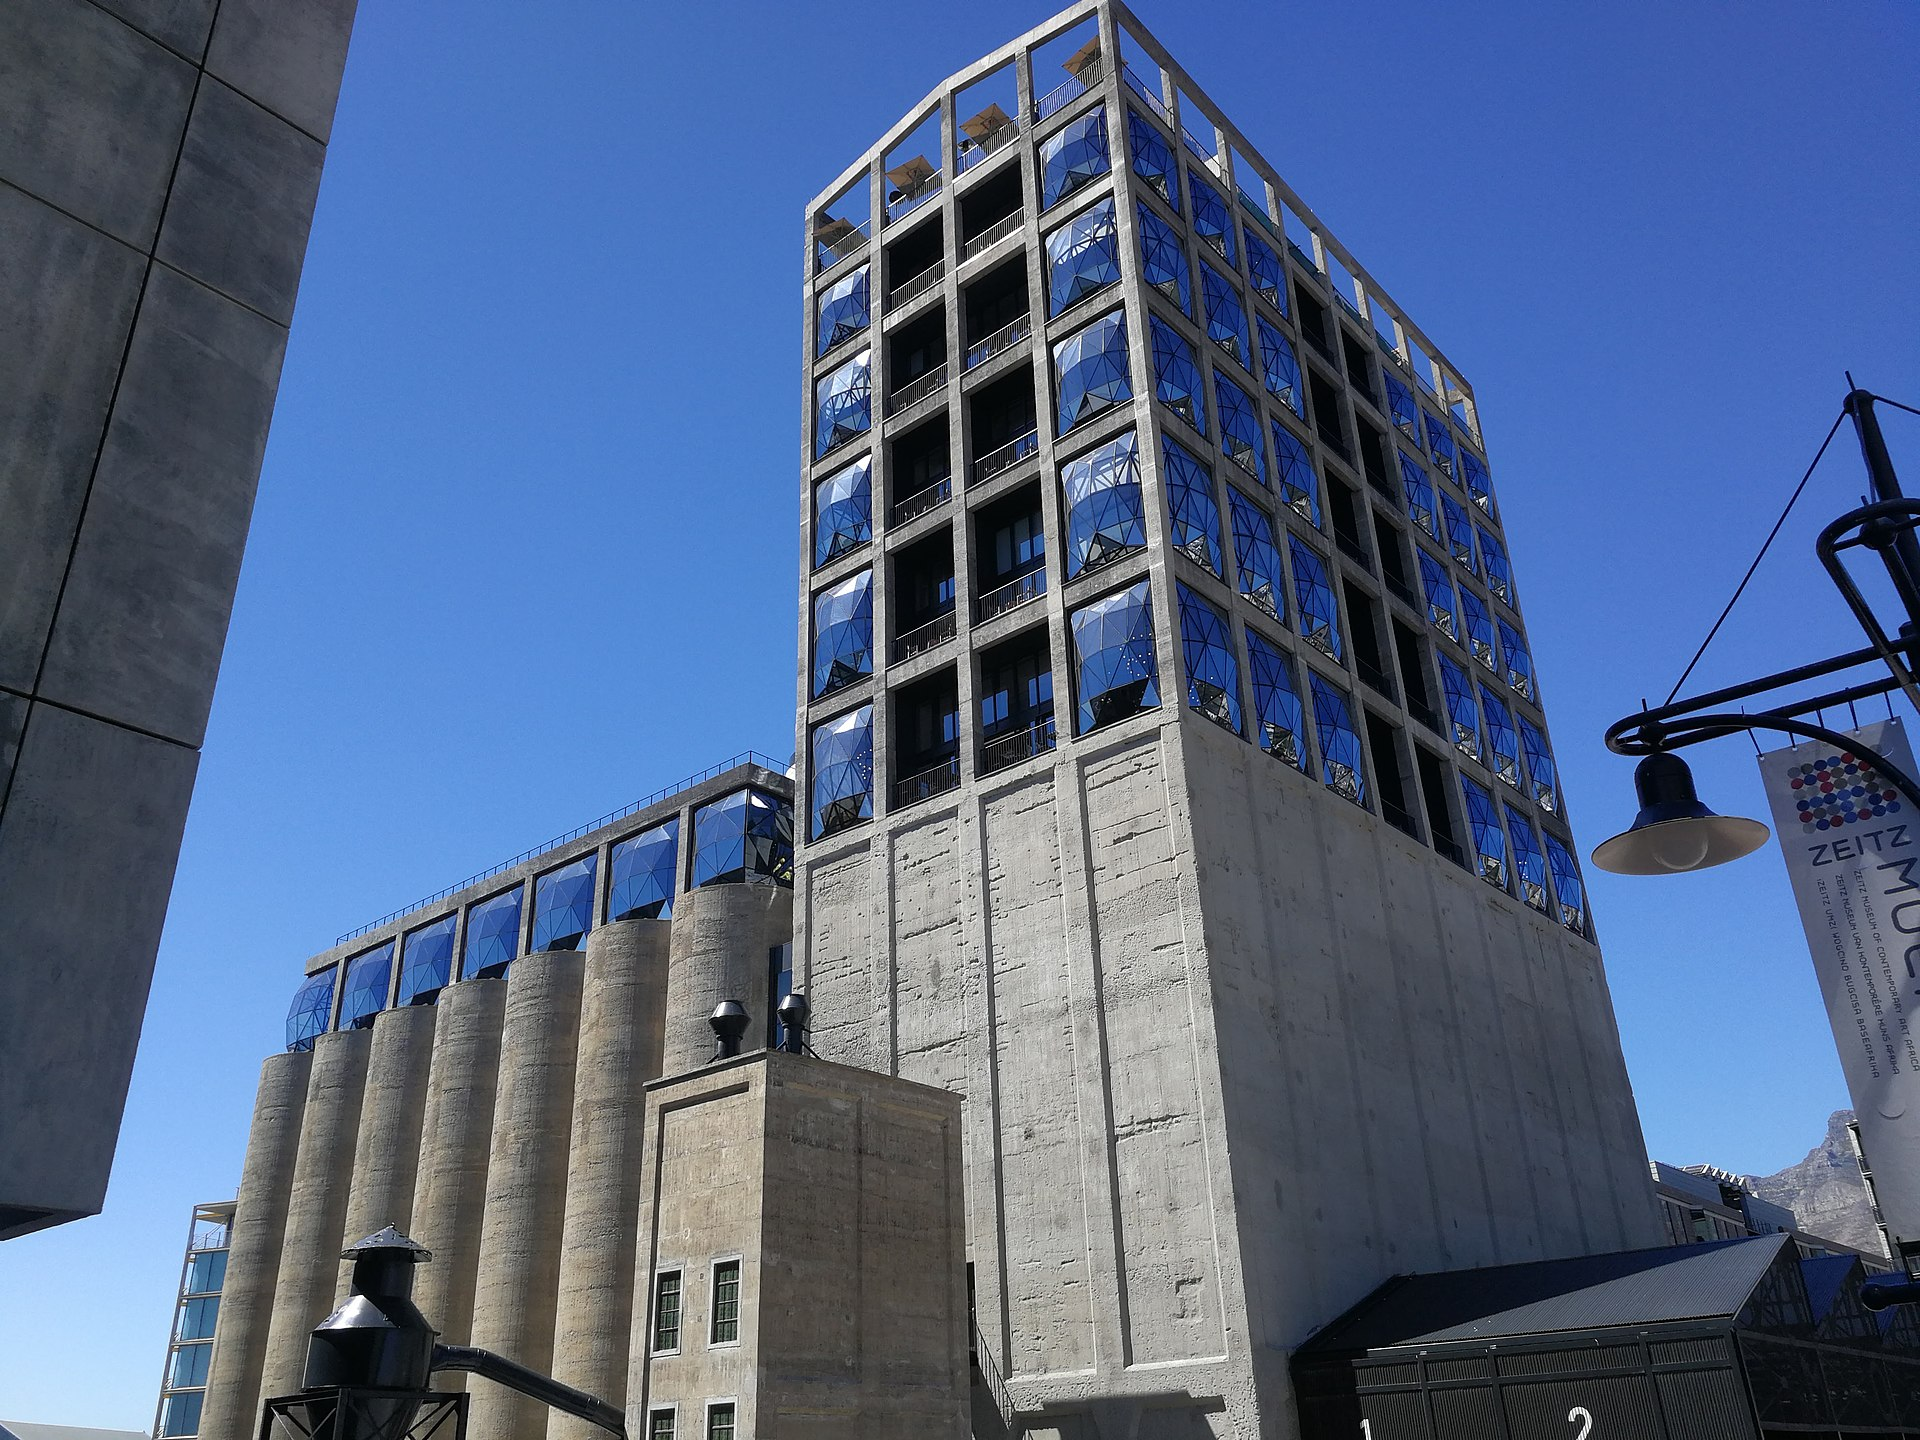 Zeits Museum of Contemporary Art in Cape Town, South Africa